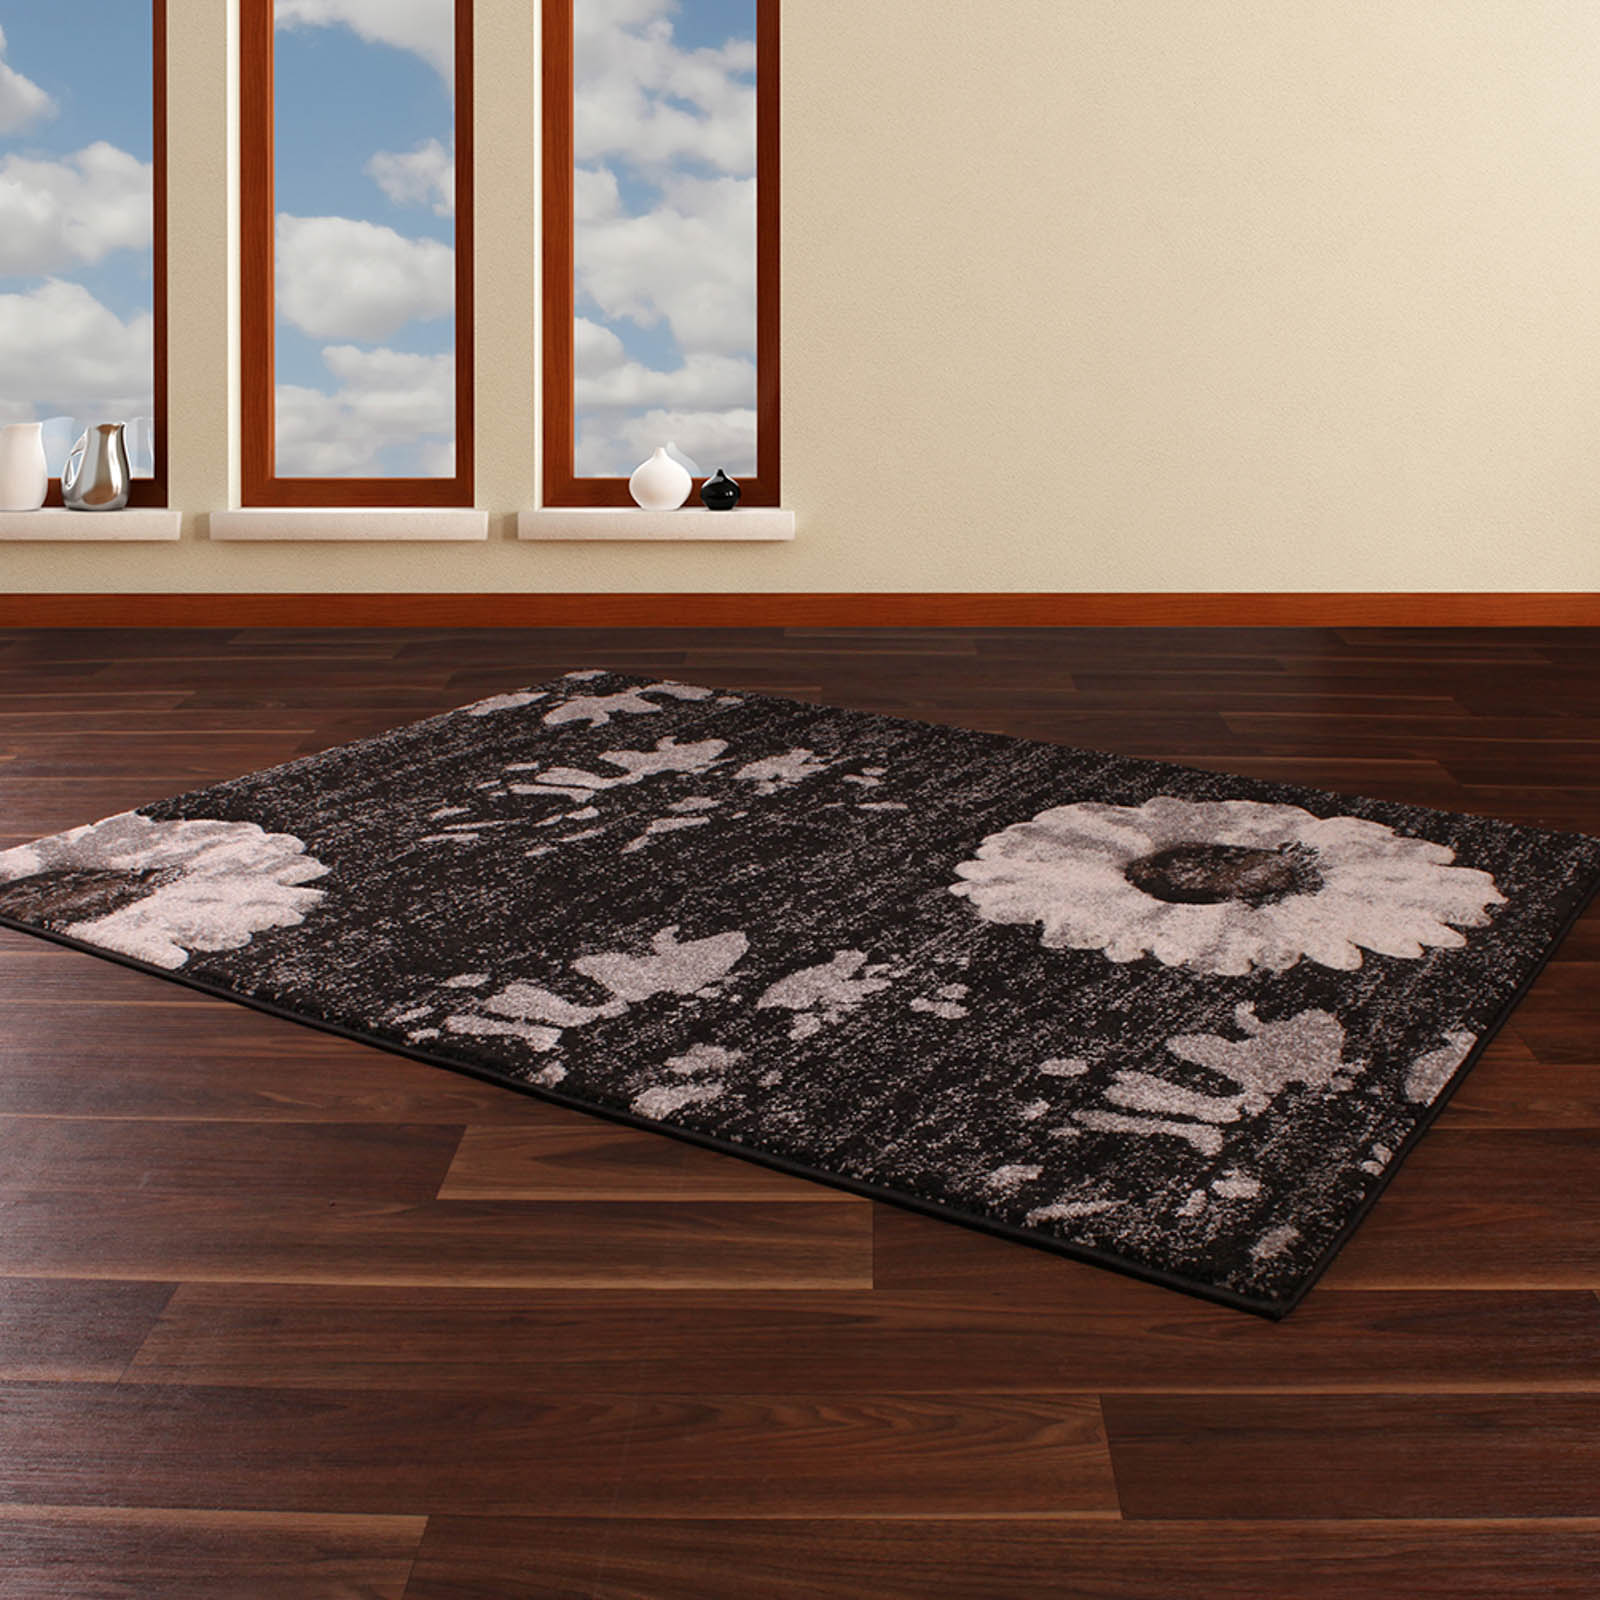 Bali Rugs 877 in Anthracite